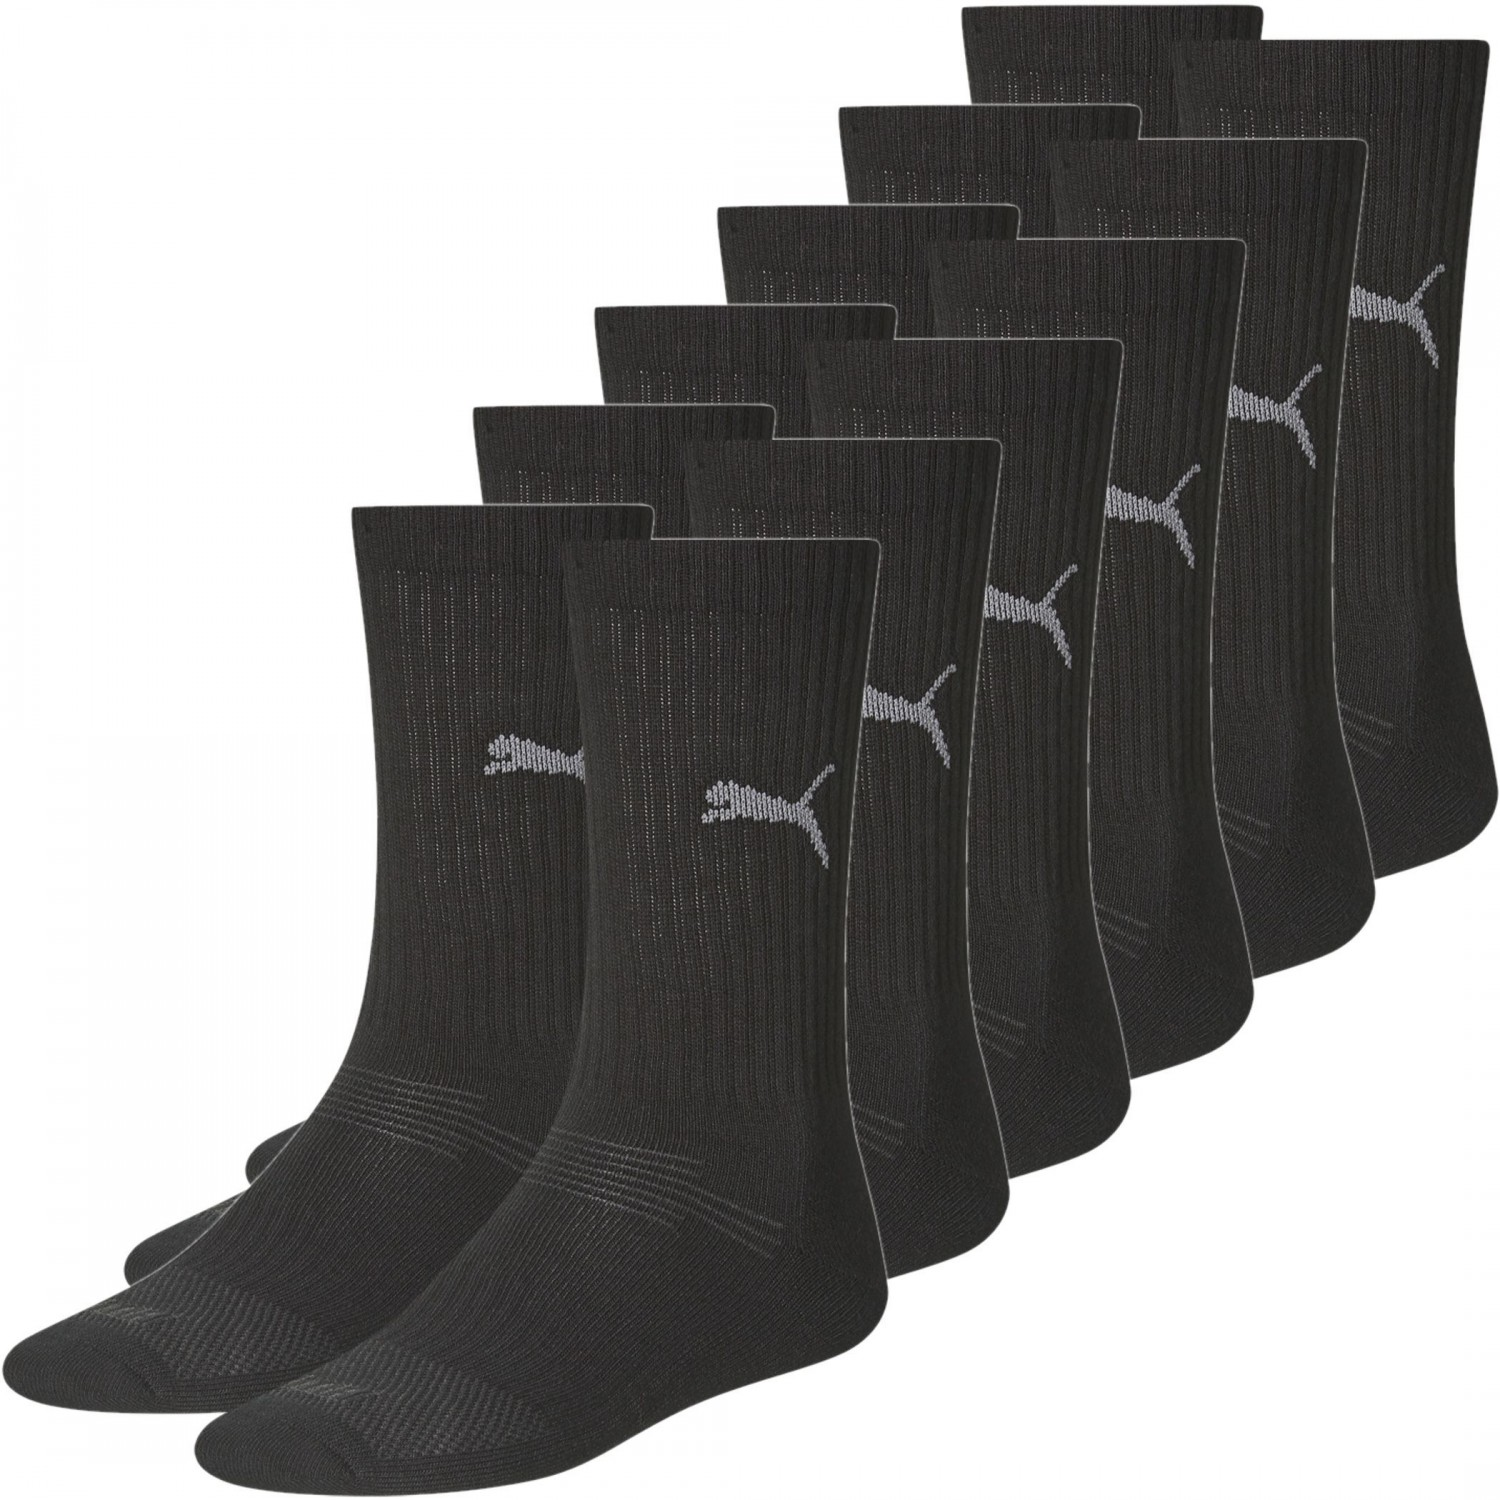 6 paar puma socken herren sport str mpfe coolmax freizeit. Black Bedroom Furniture Sets. Home Design Ideas